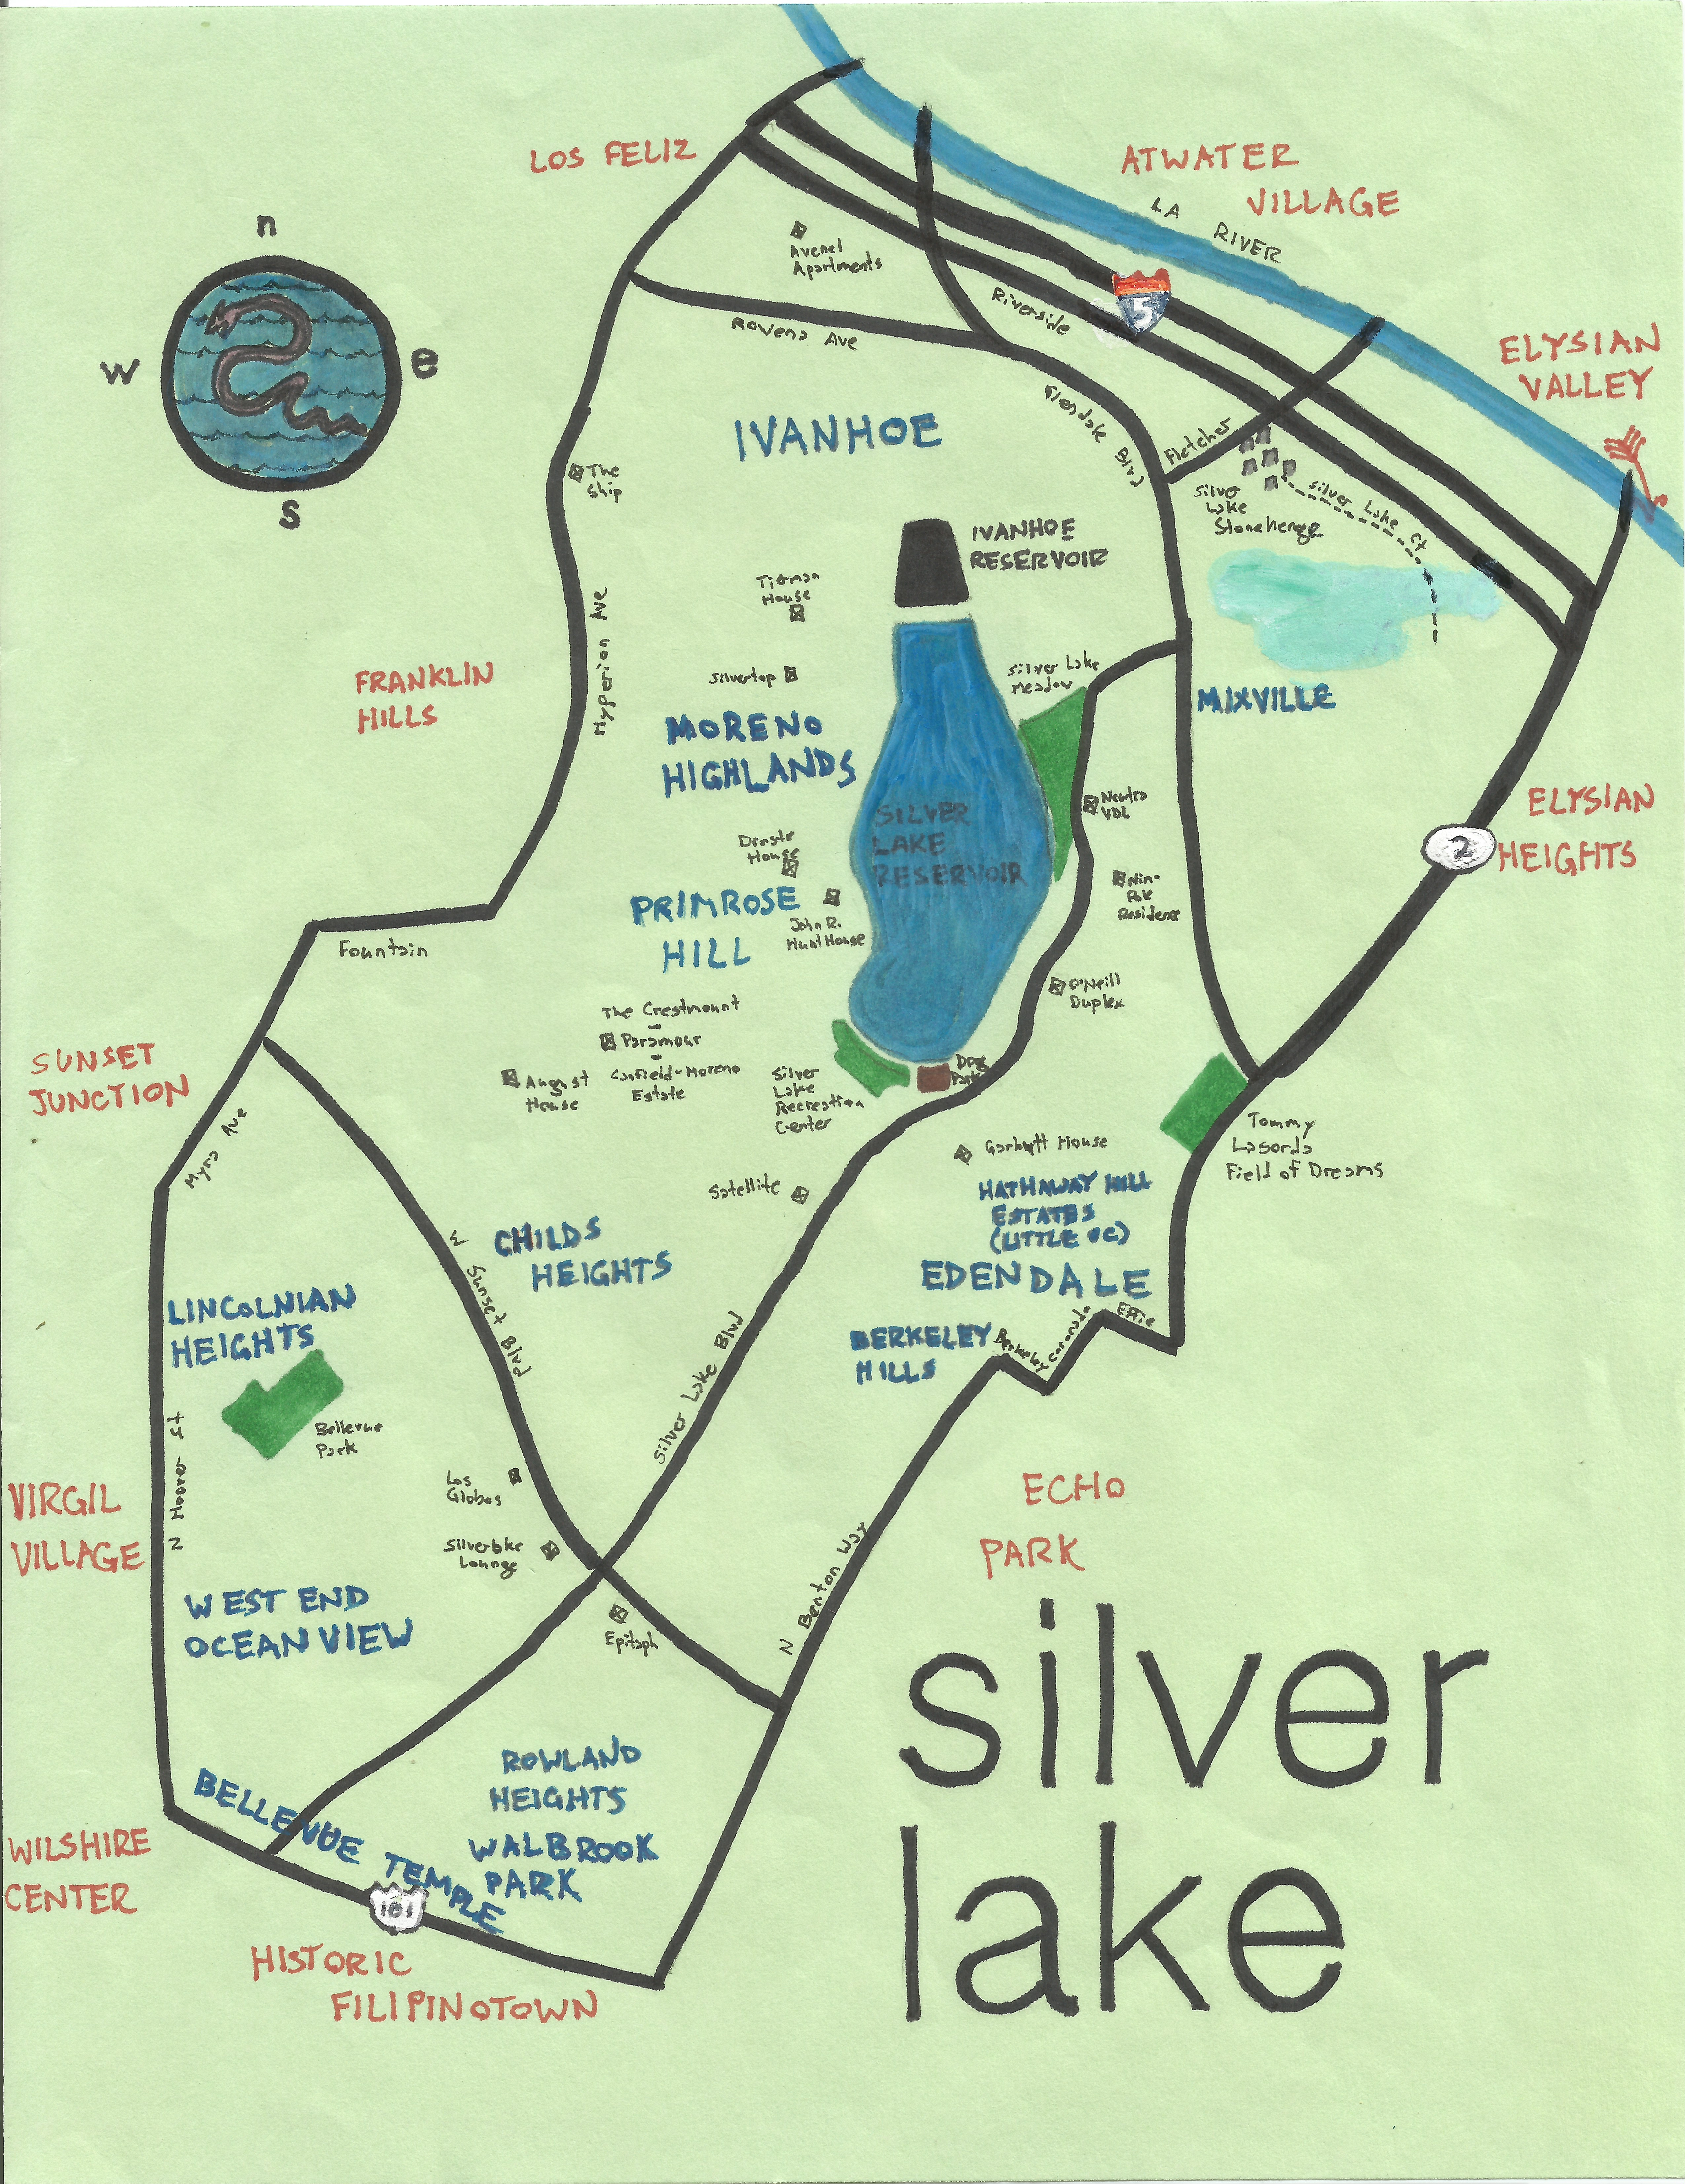 Pendersleigh & Sons Cartography's map of Silver Lake